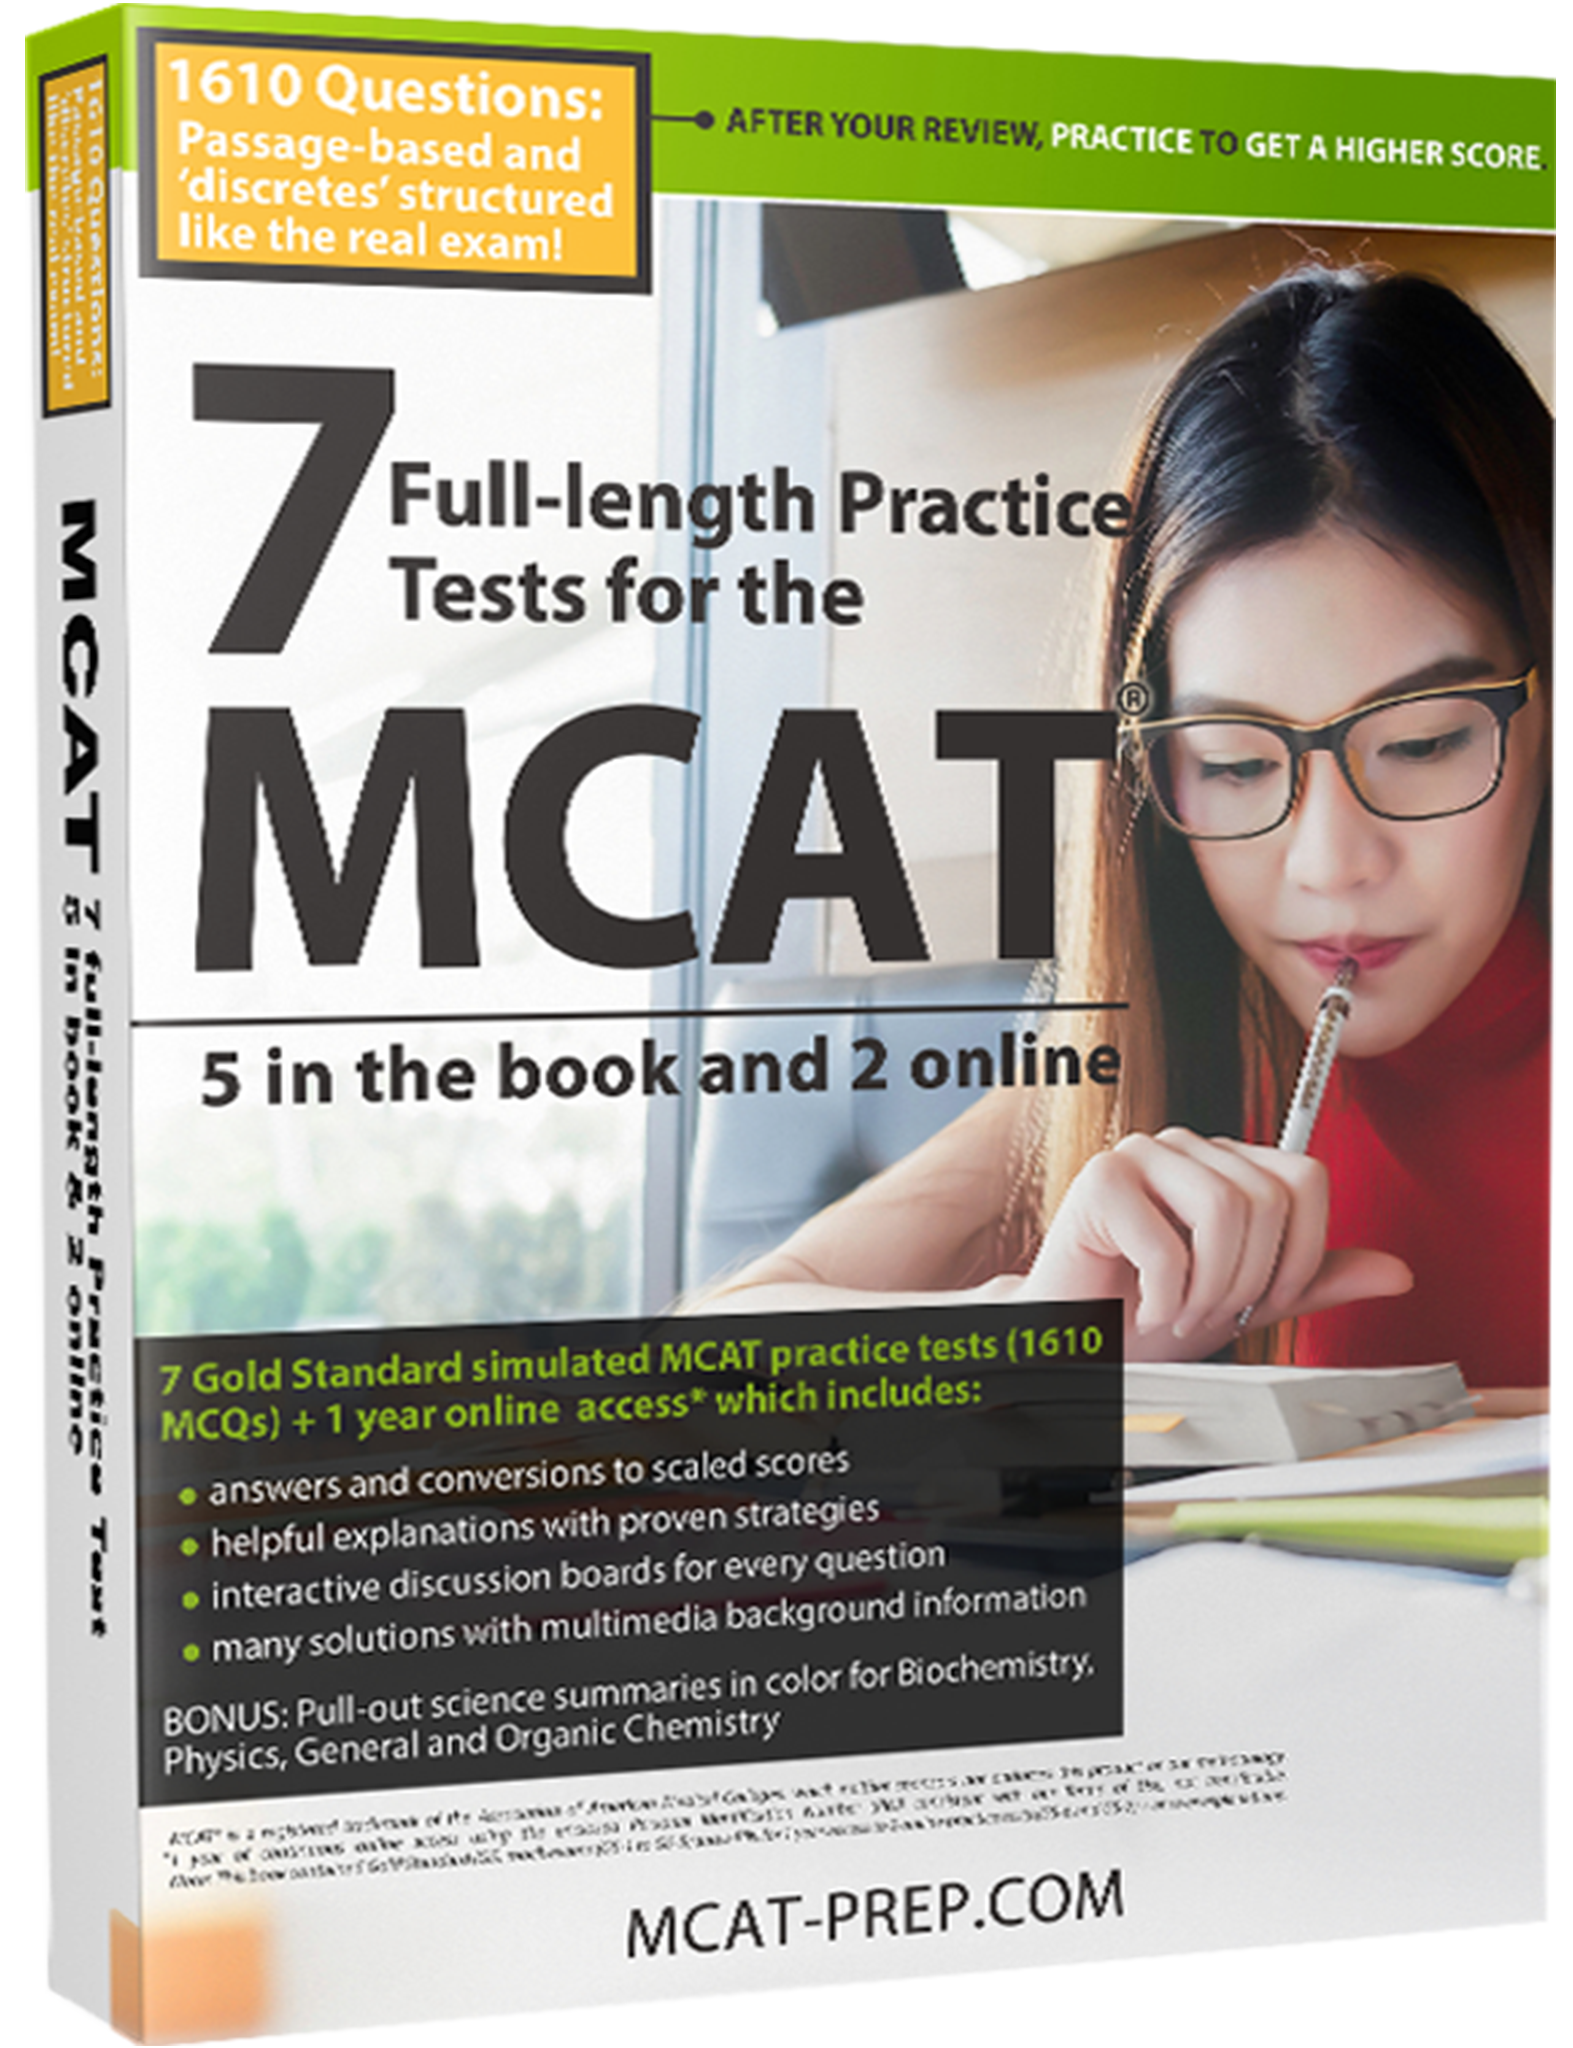 MCAT Organic Chemistry Mechanisms| Gold Standard MCAT Prep